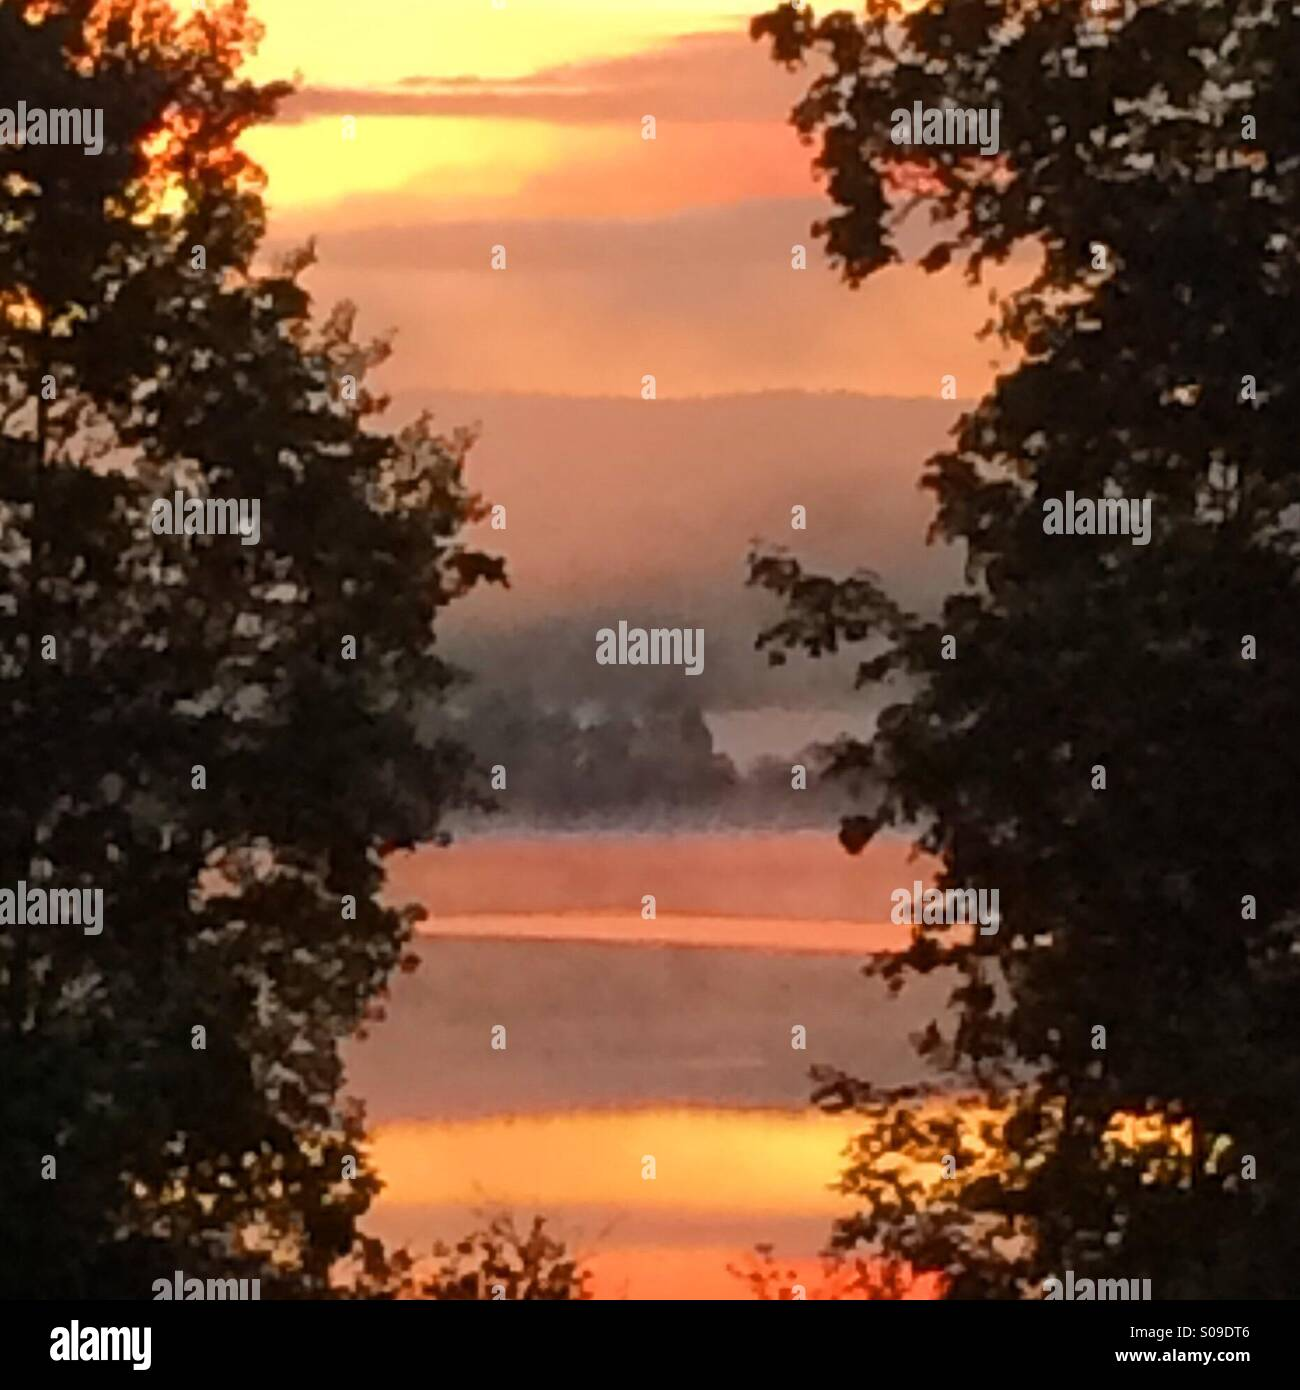 A wonderful early sunrise in Dalarna, Sweden - Stock Image